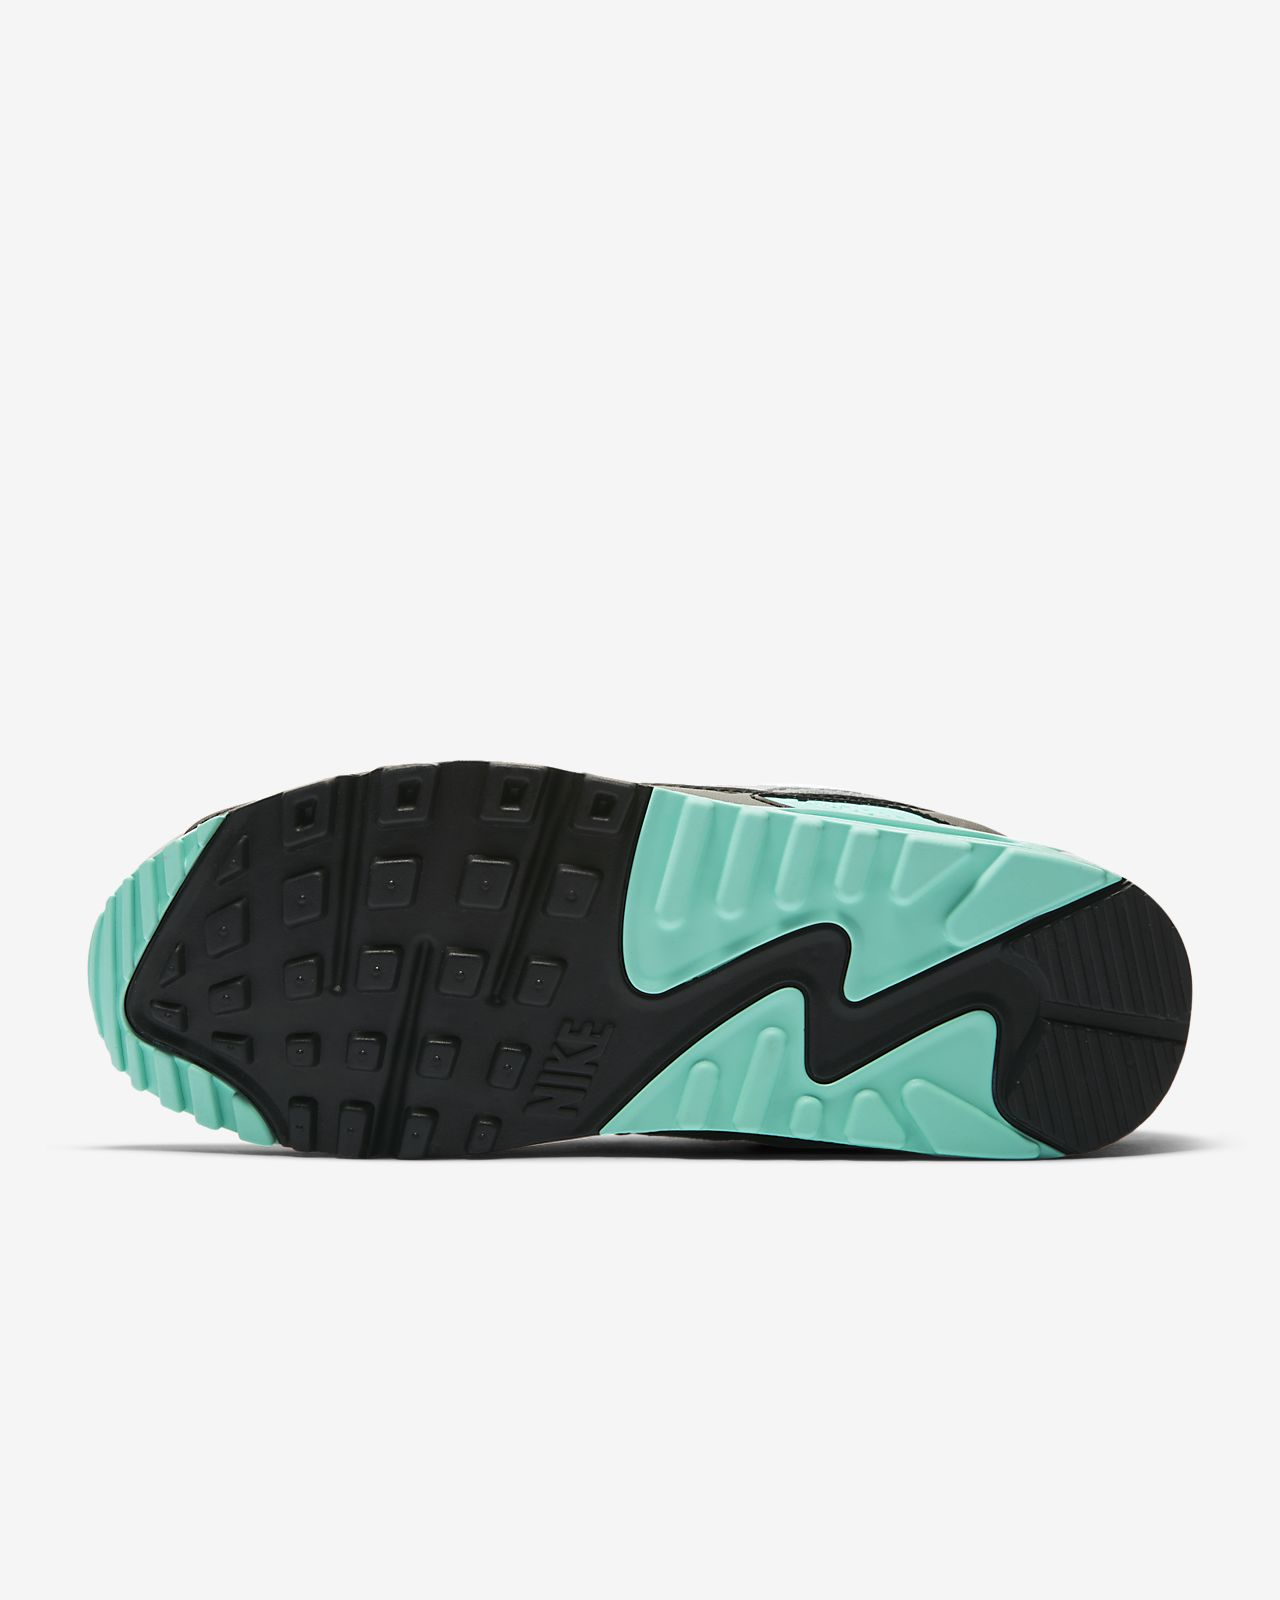 Nike Air Max 90 Turquoise CD0490 104 Release Date SBD